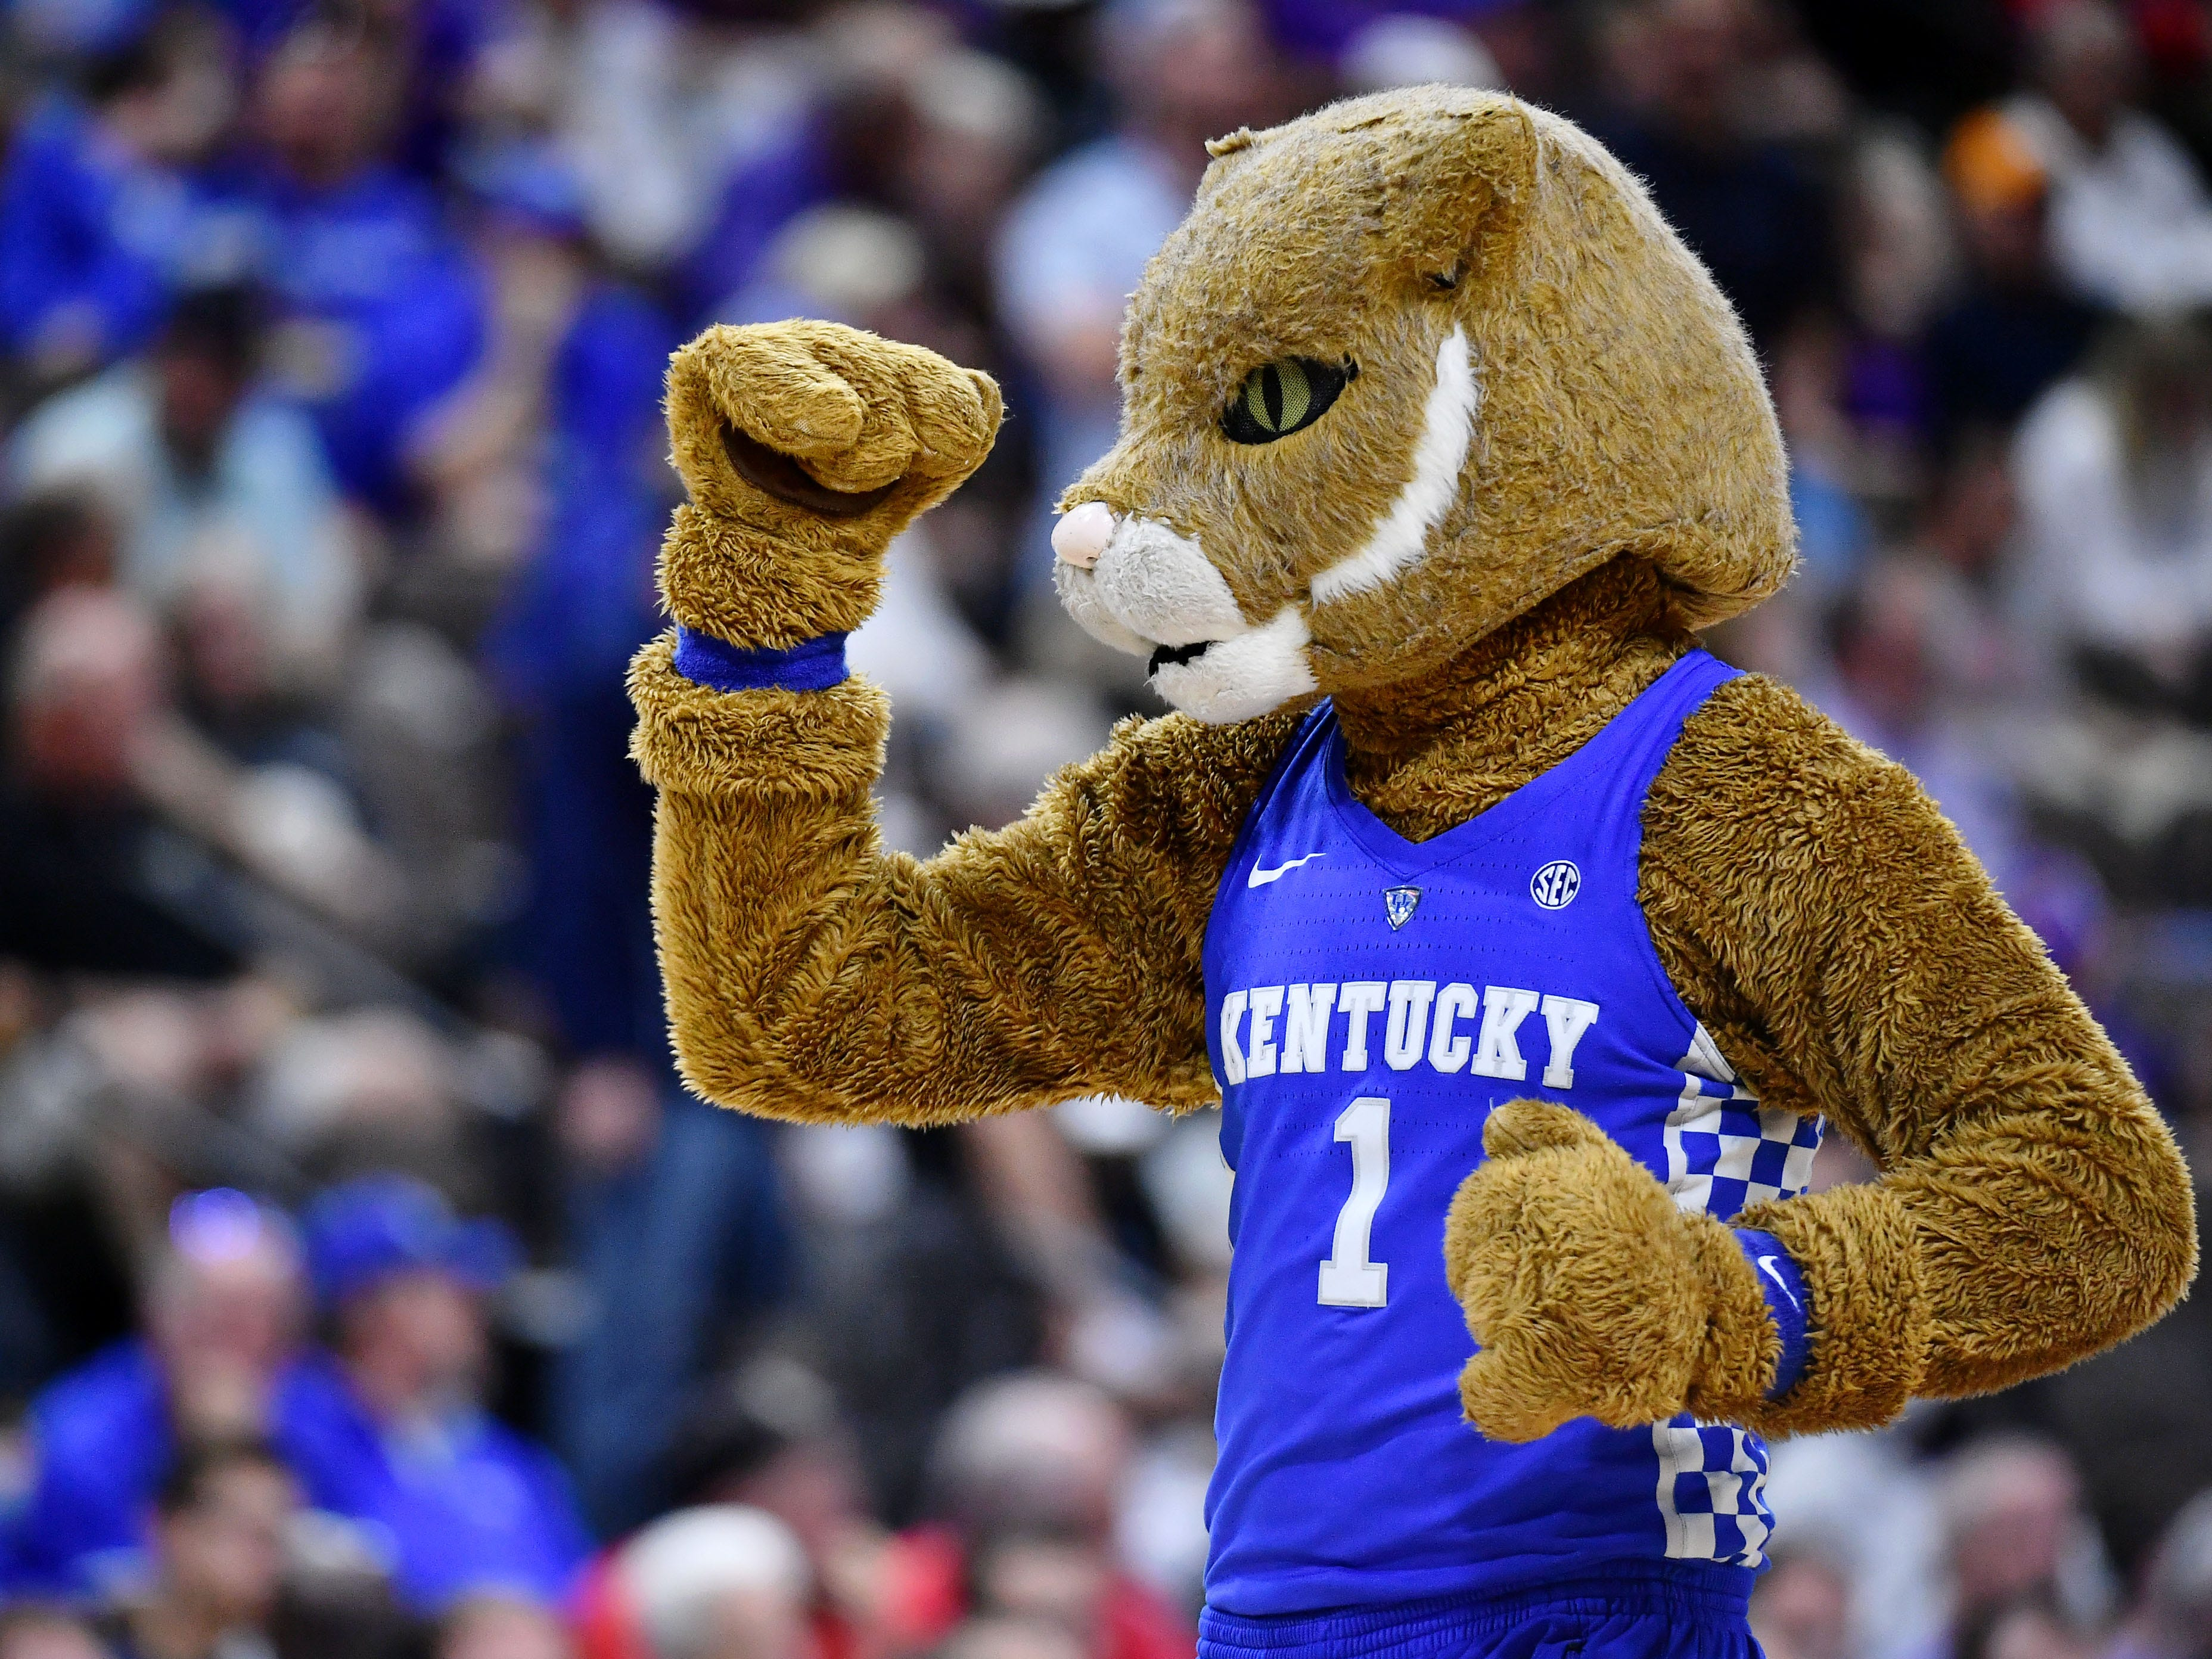 Round of 32: The Kentucky Wildcats mascot gestures during the game against the Wofford Terriers.